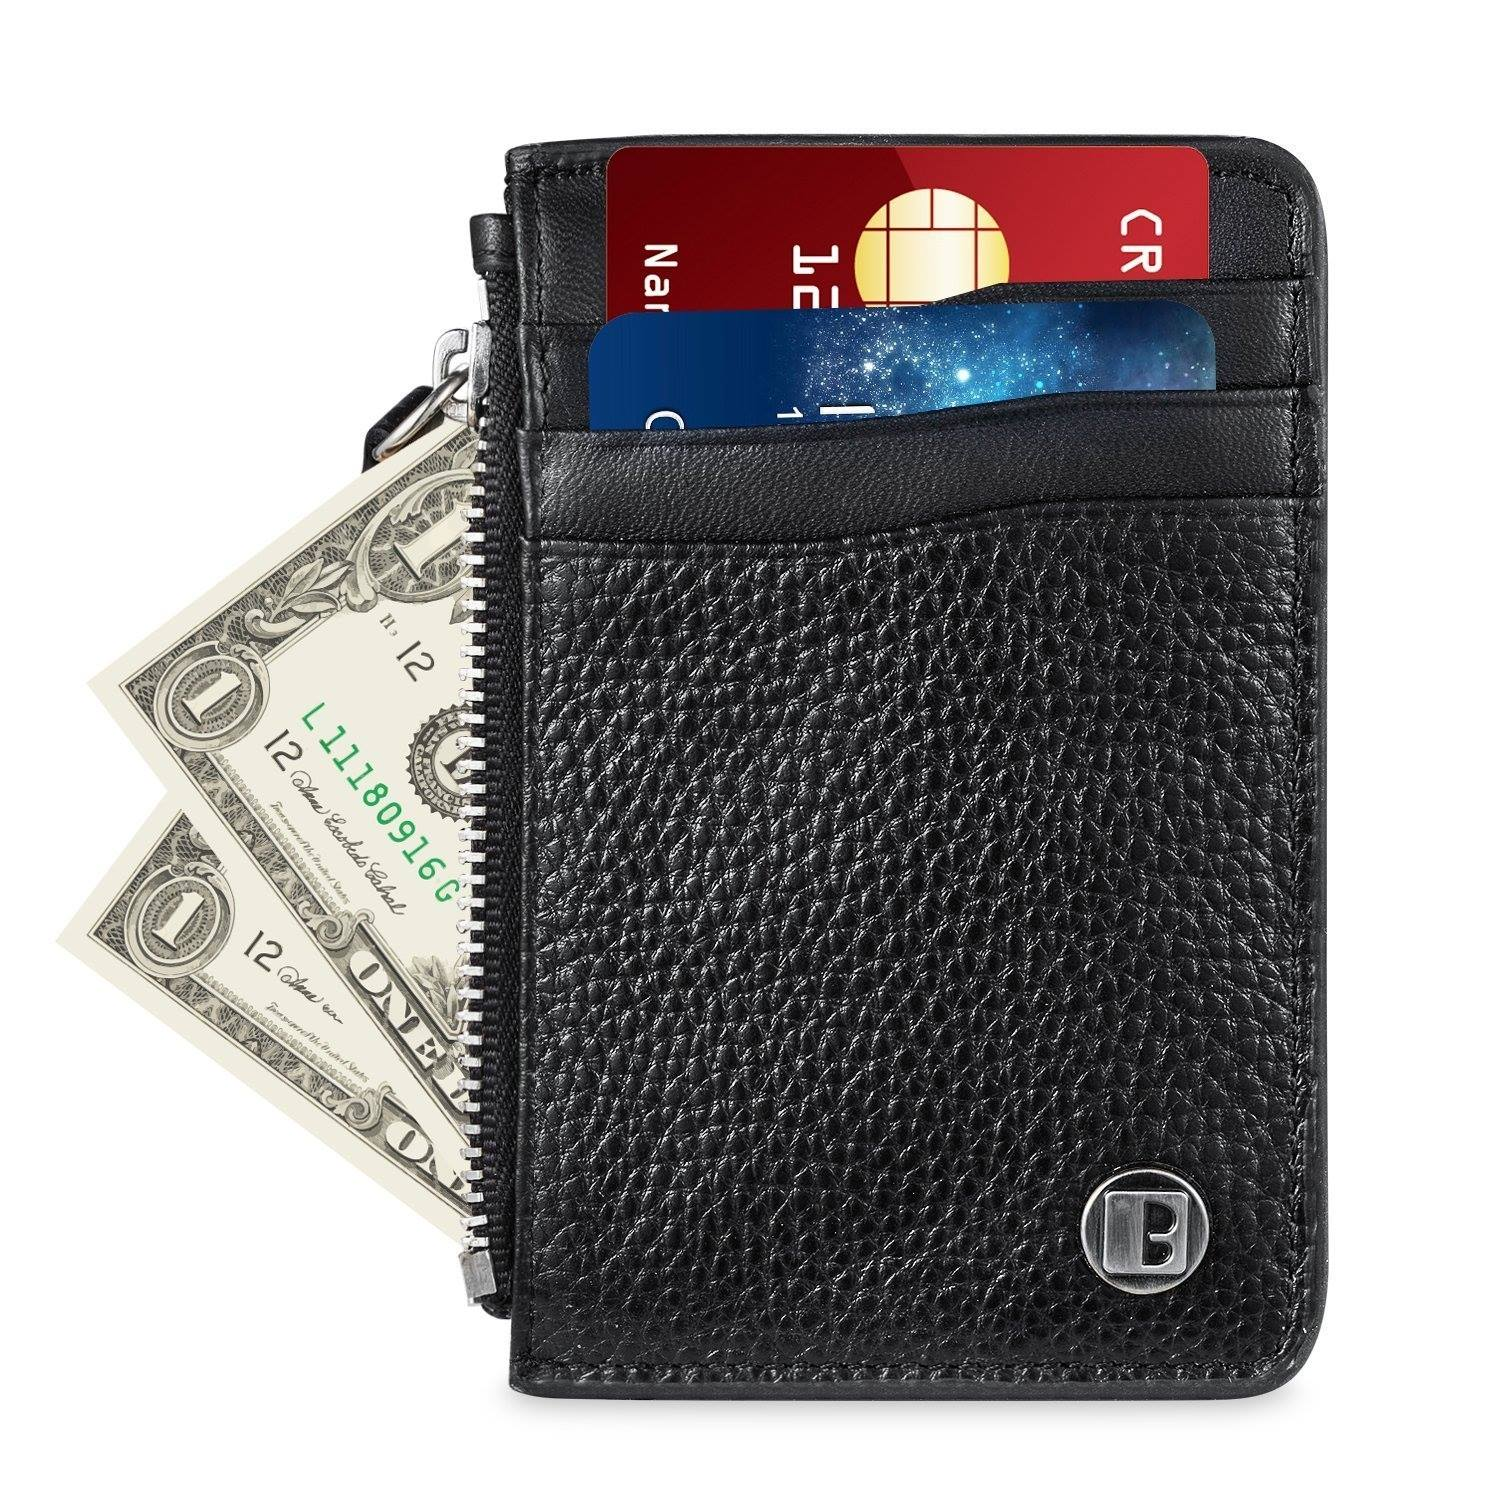 $8.96 Benuo Genuine Leather Credit Card holder-Free @ Amazon